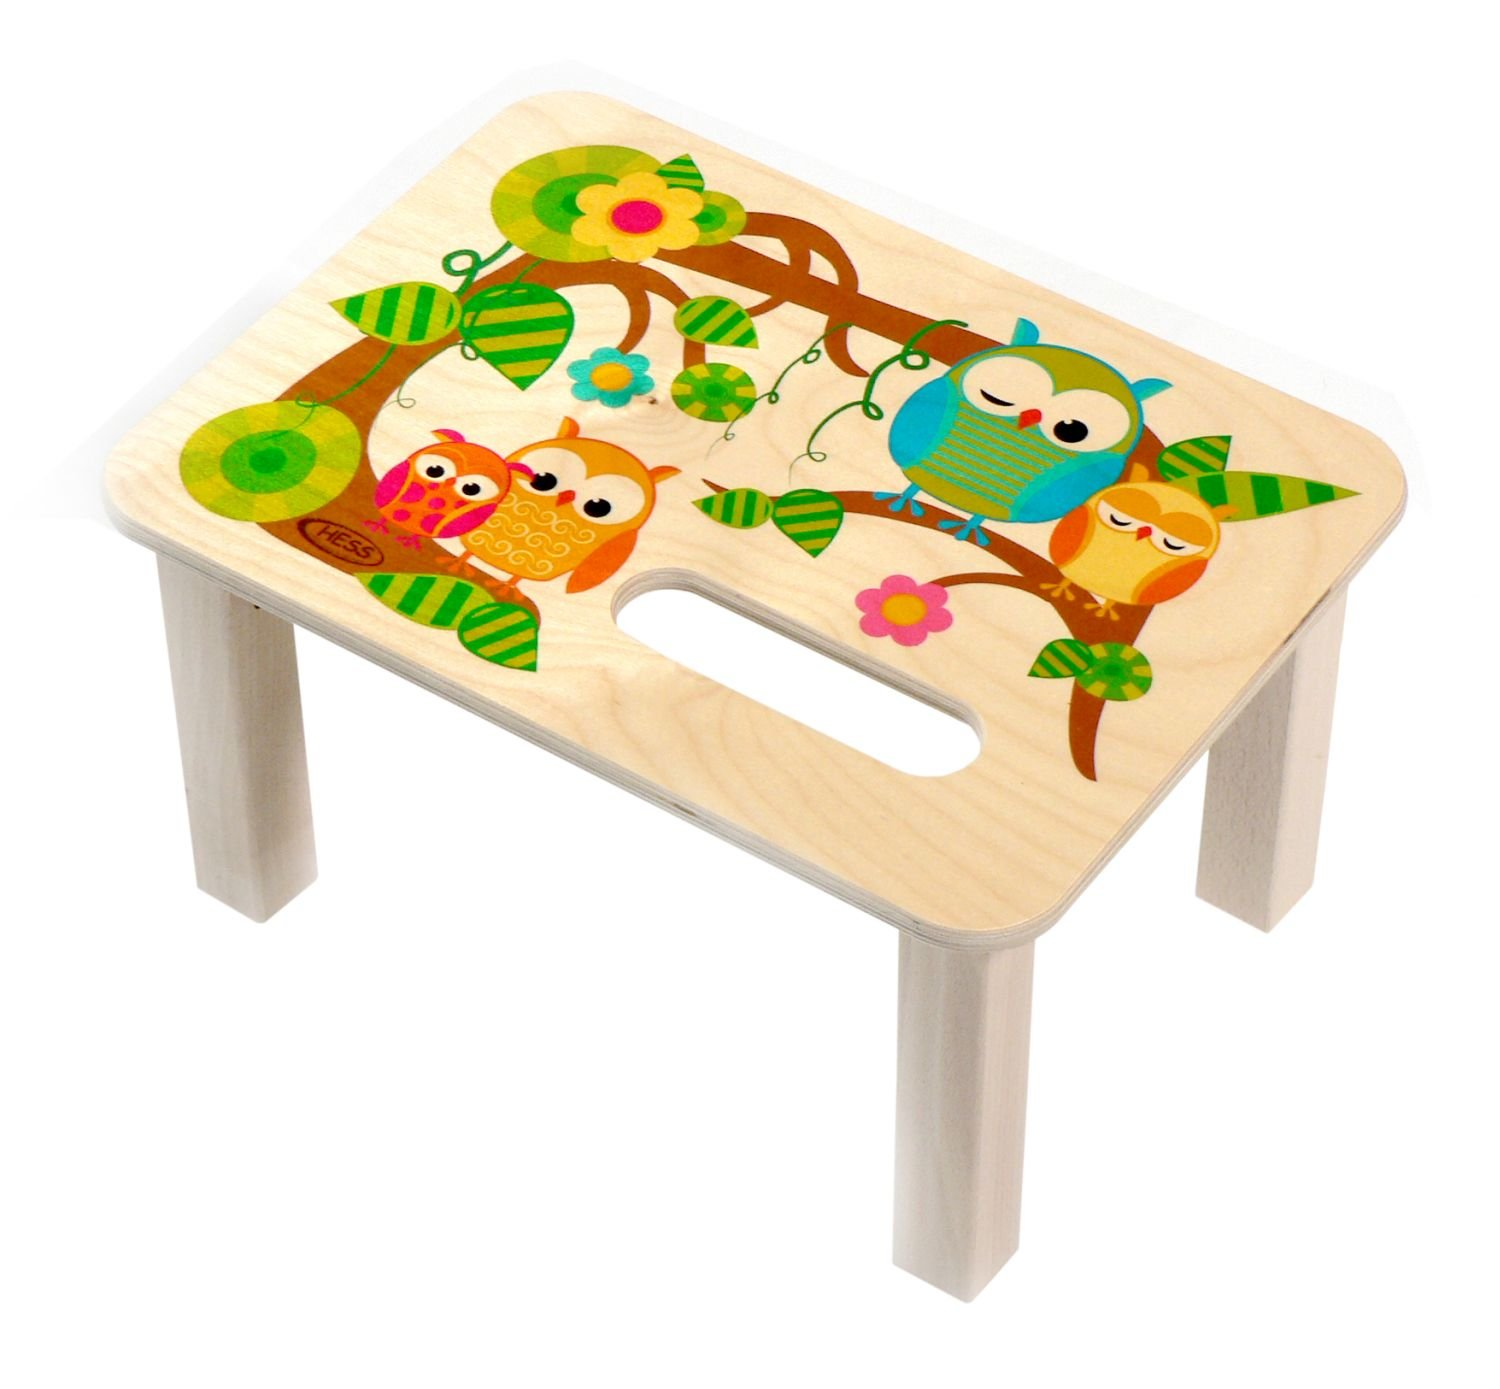 Hess Wooden Footstool Baby Toy, Owl Hess_30283